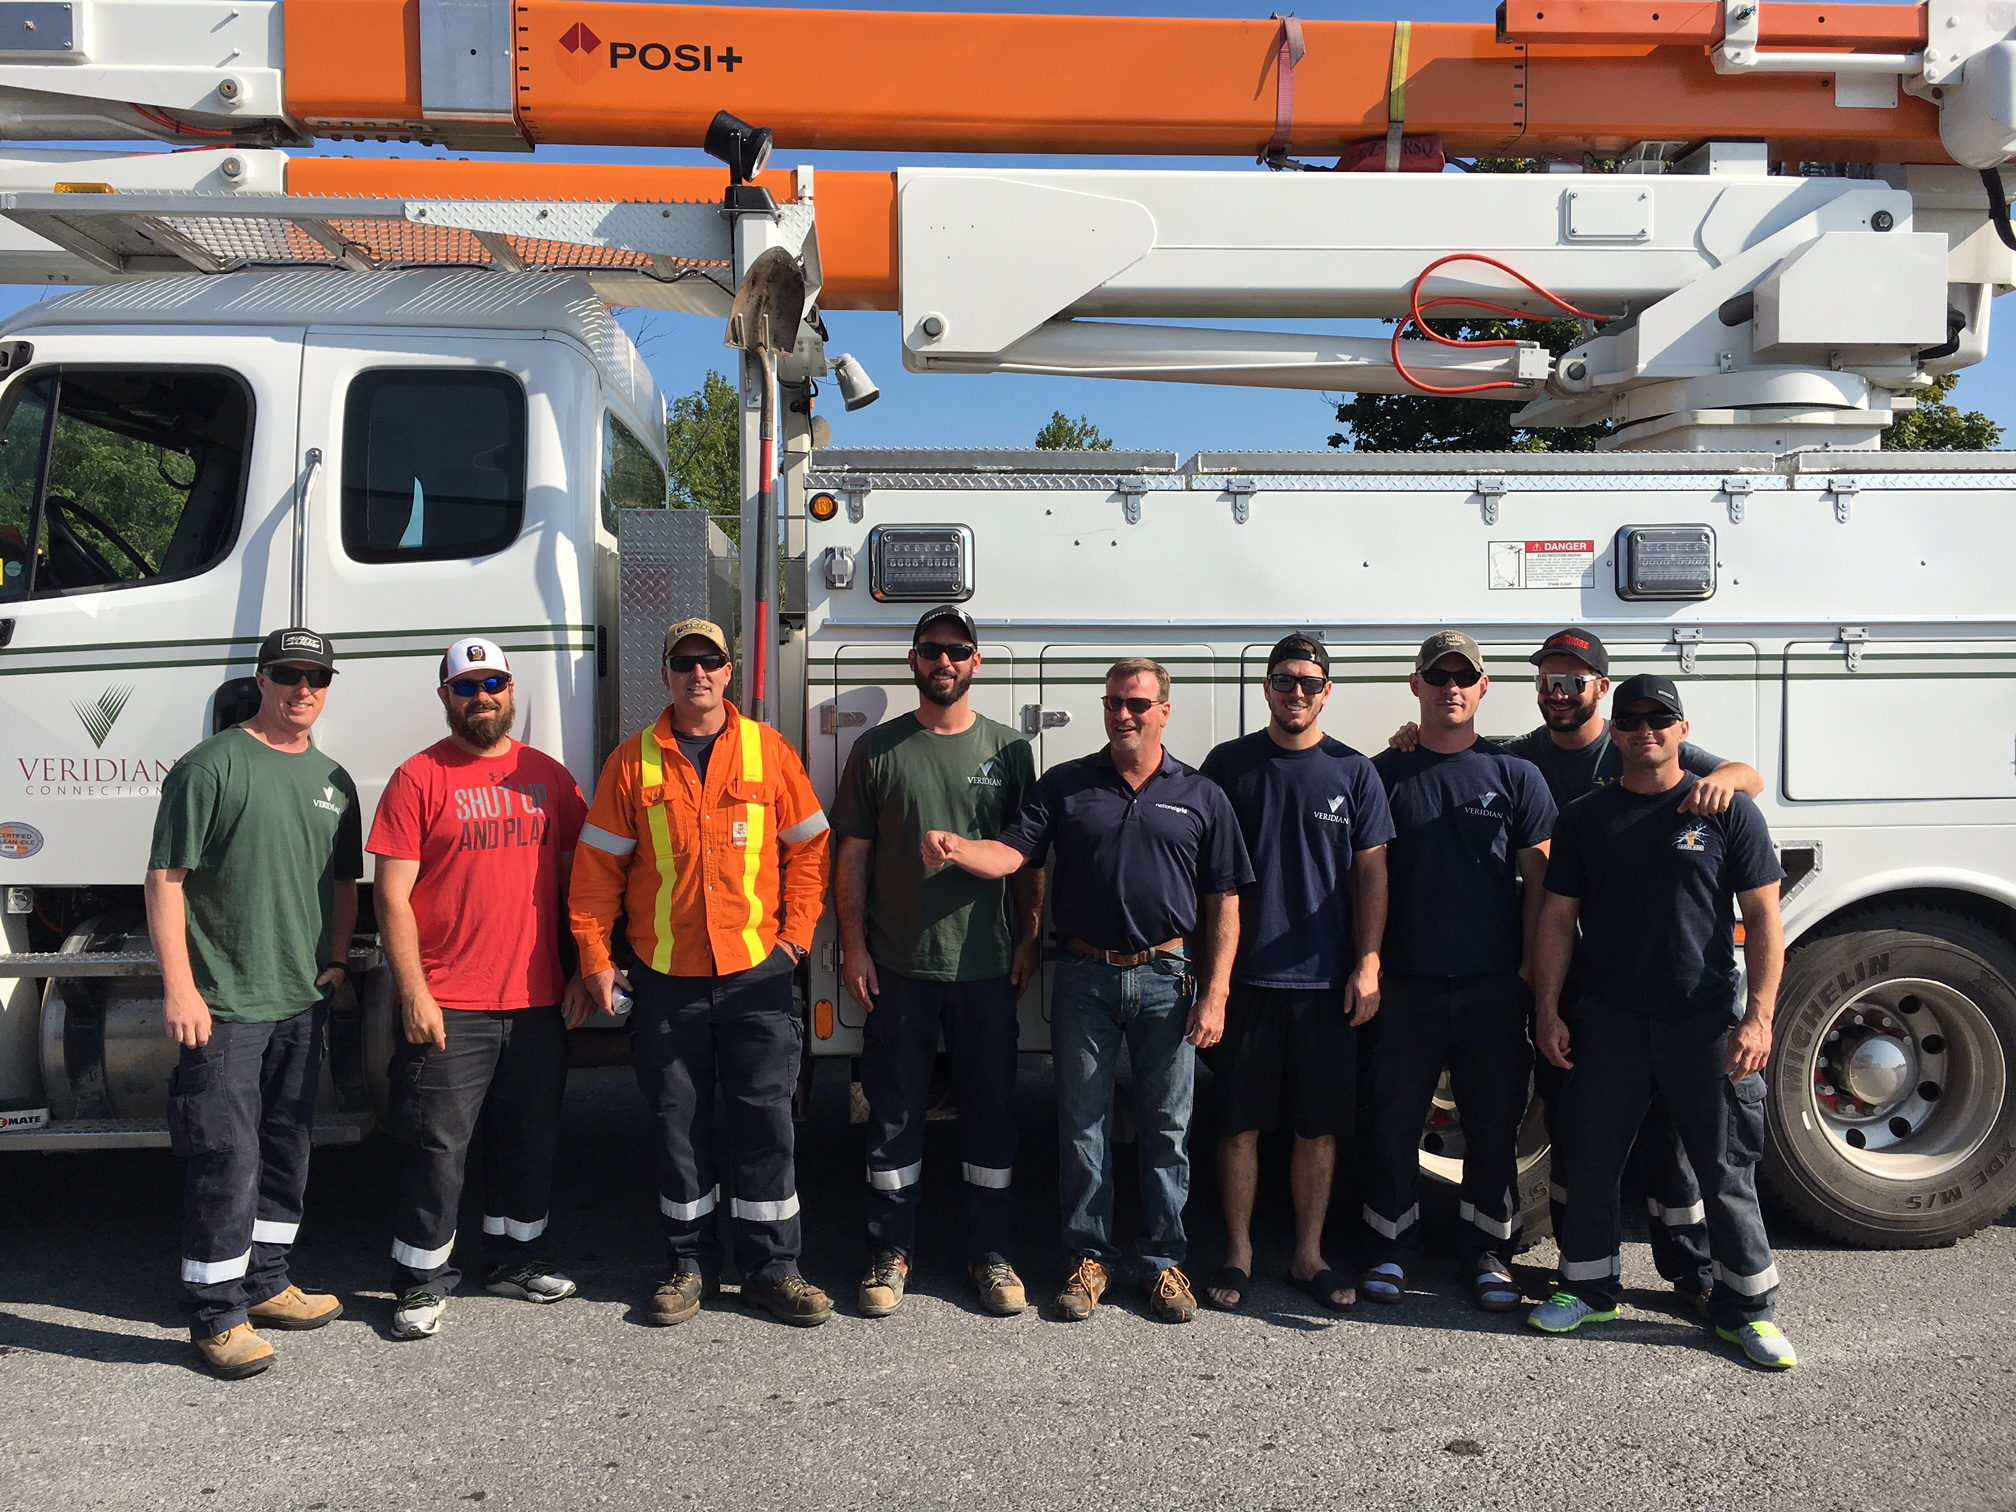 You are currently viewing Veridian crew heading to Atlanta to assist with power restoration efforts